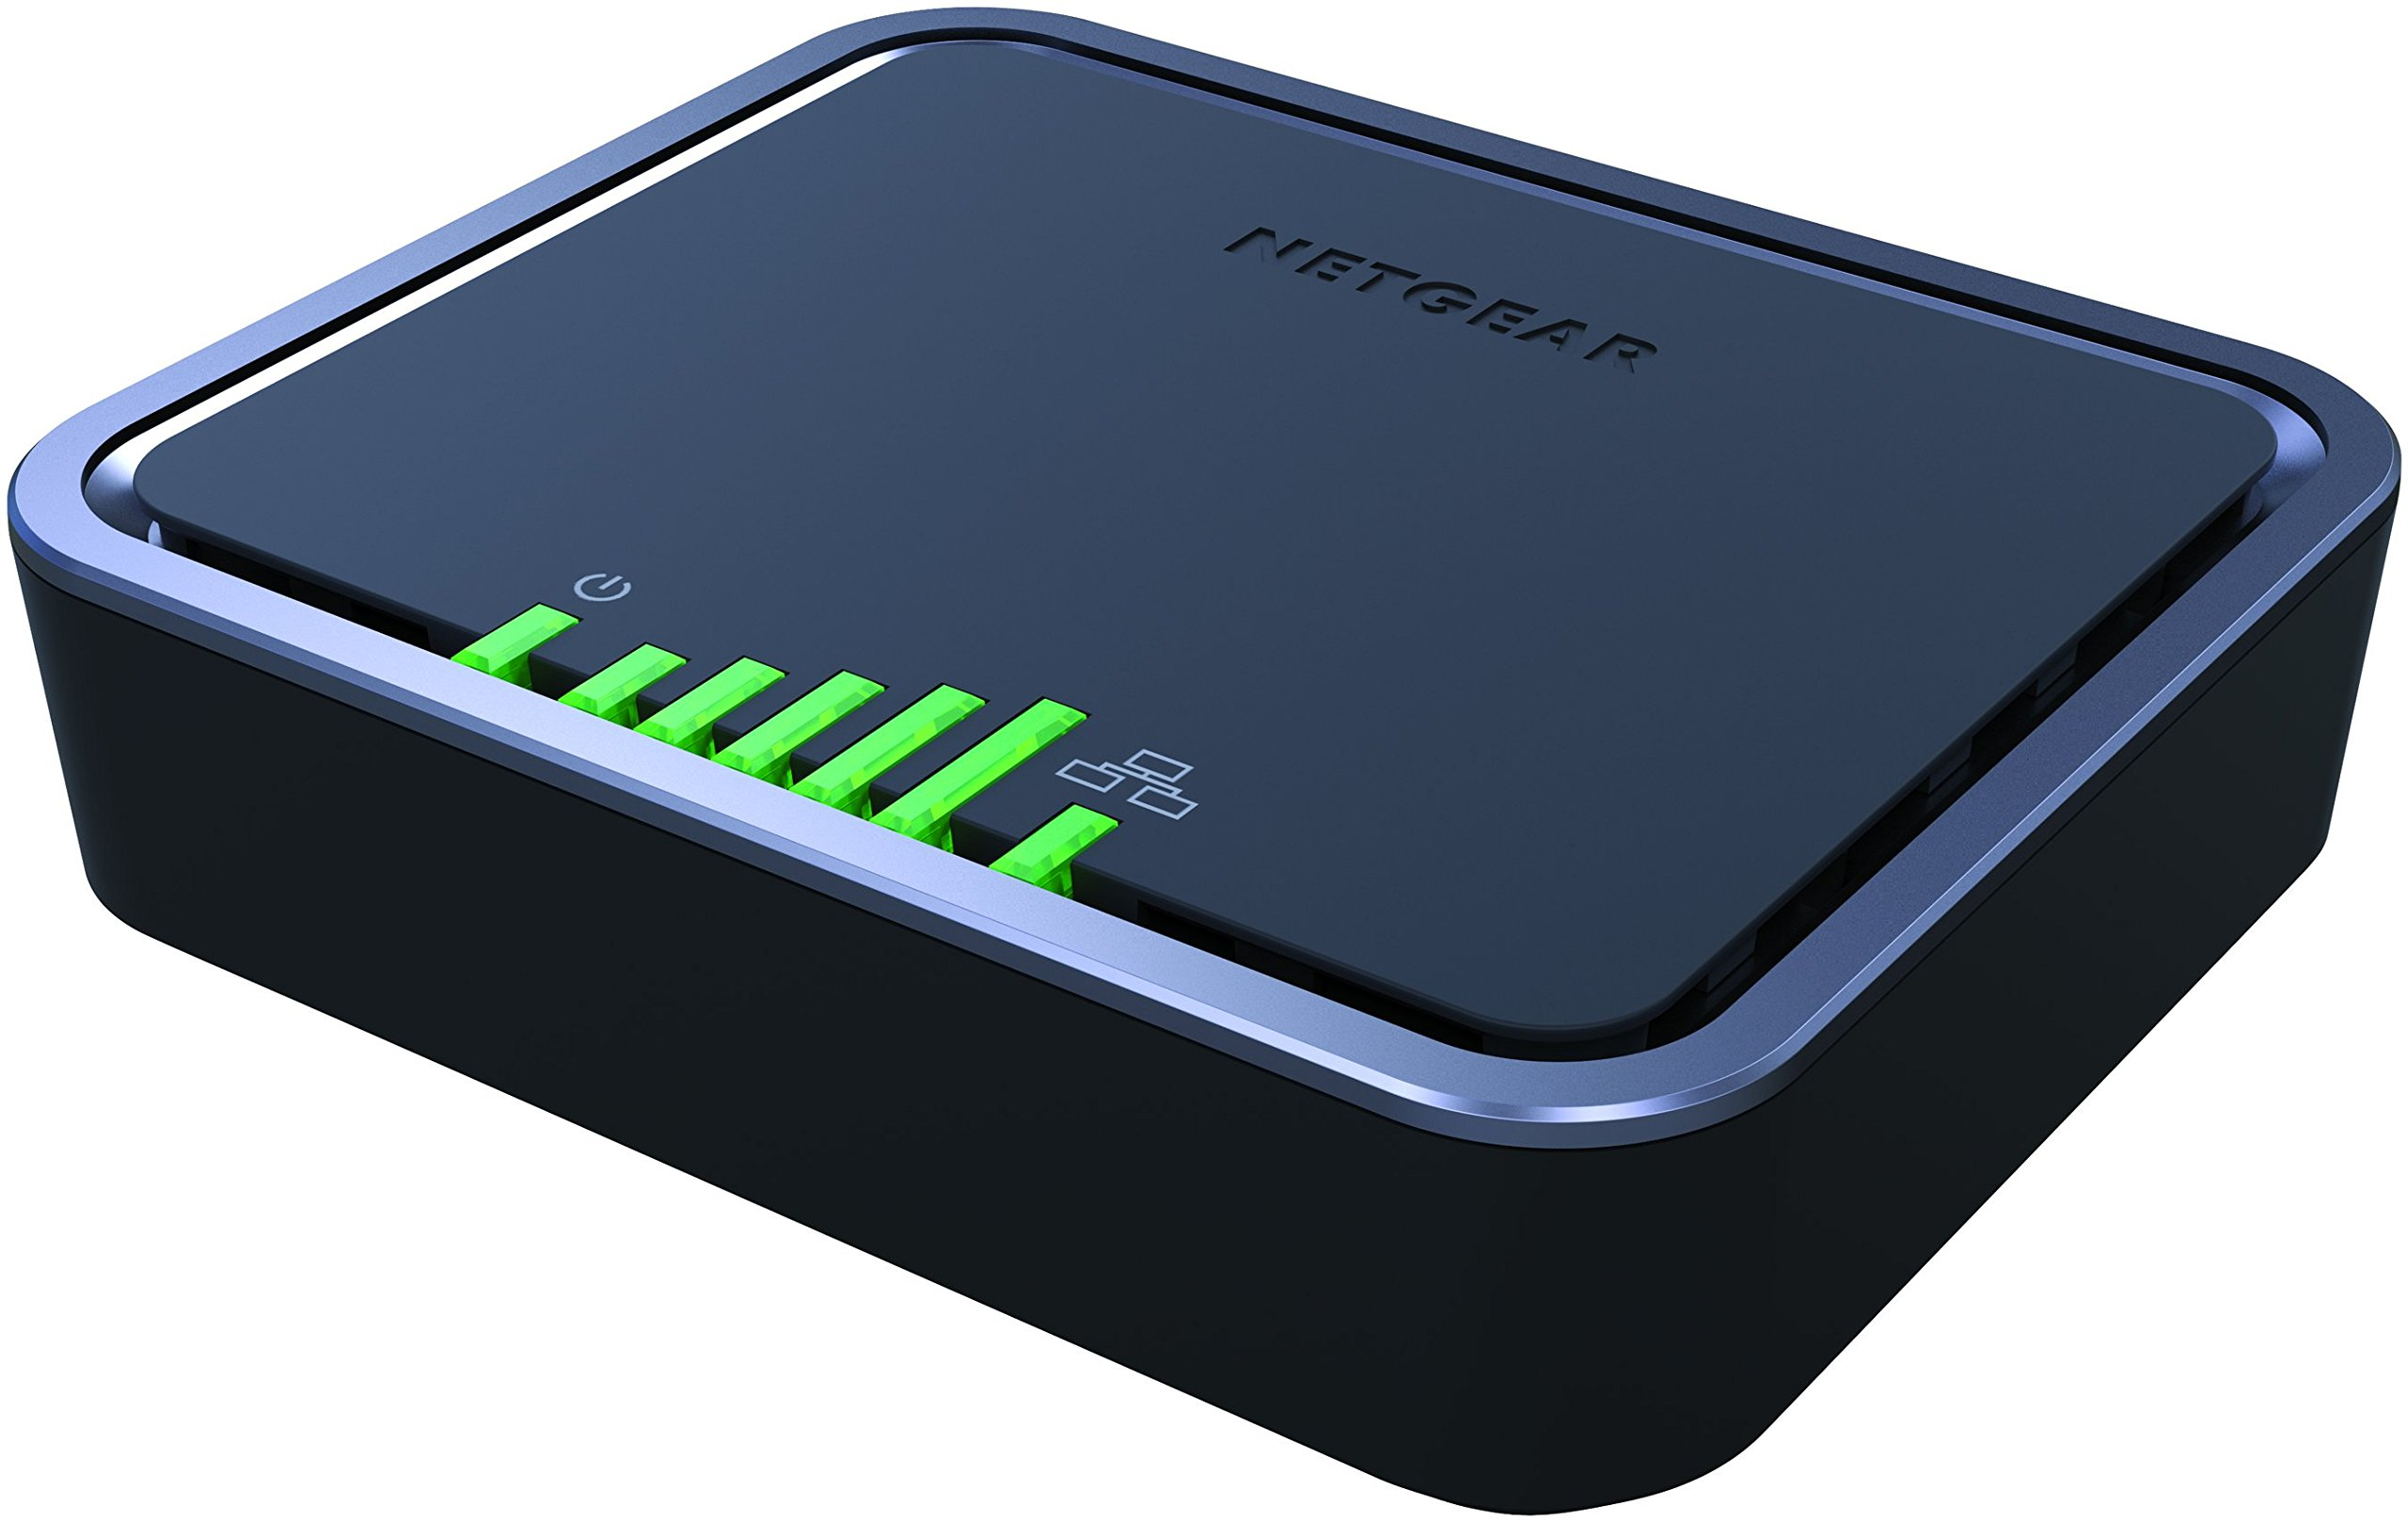 NETGEAR 4G LTE Modem – Instant Broadband Connection (LB1120)